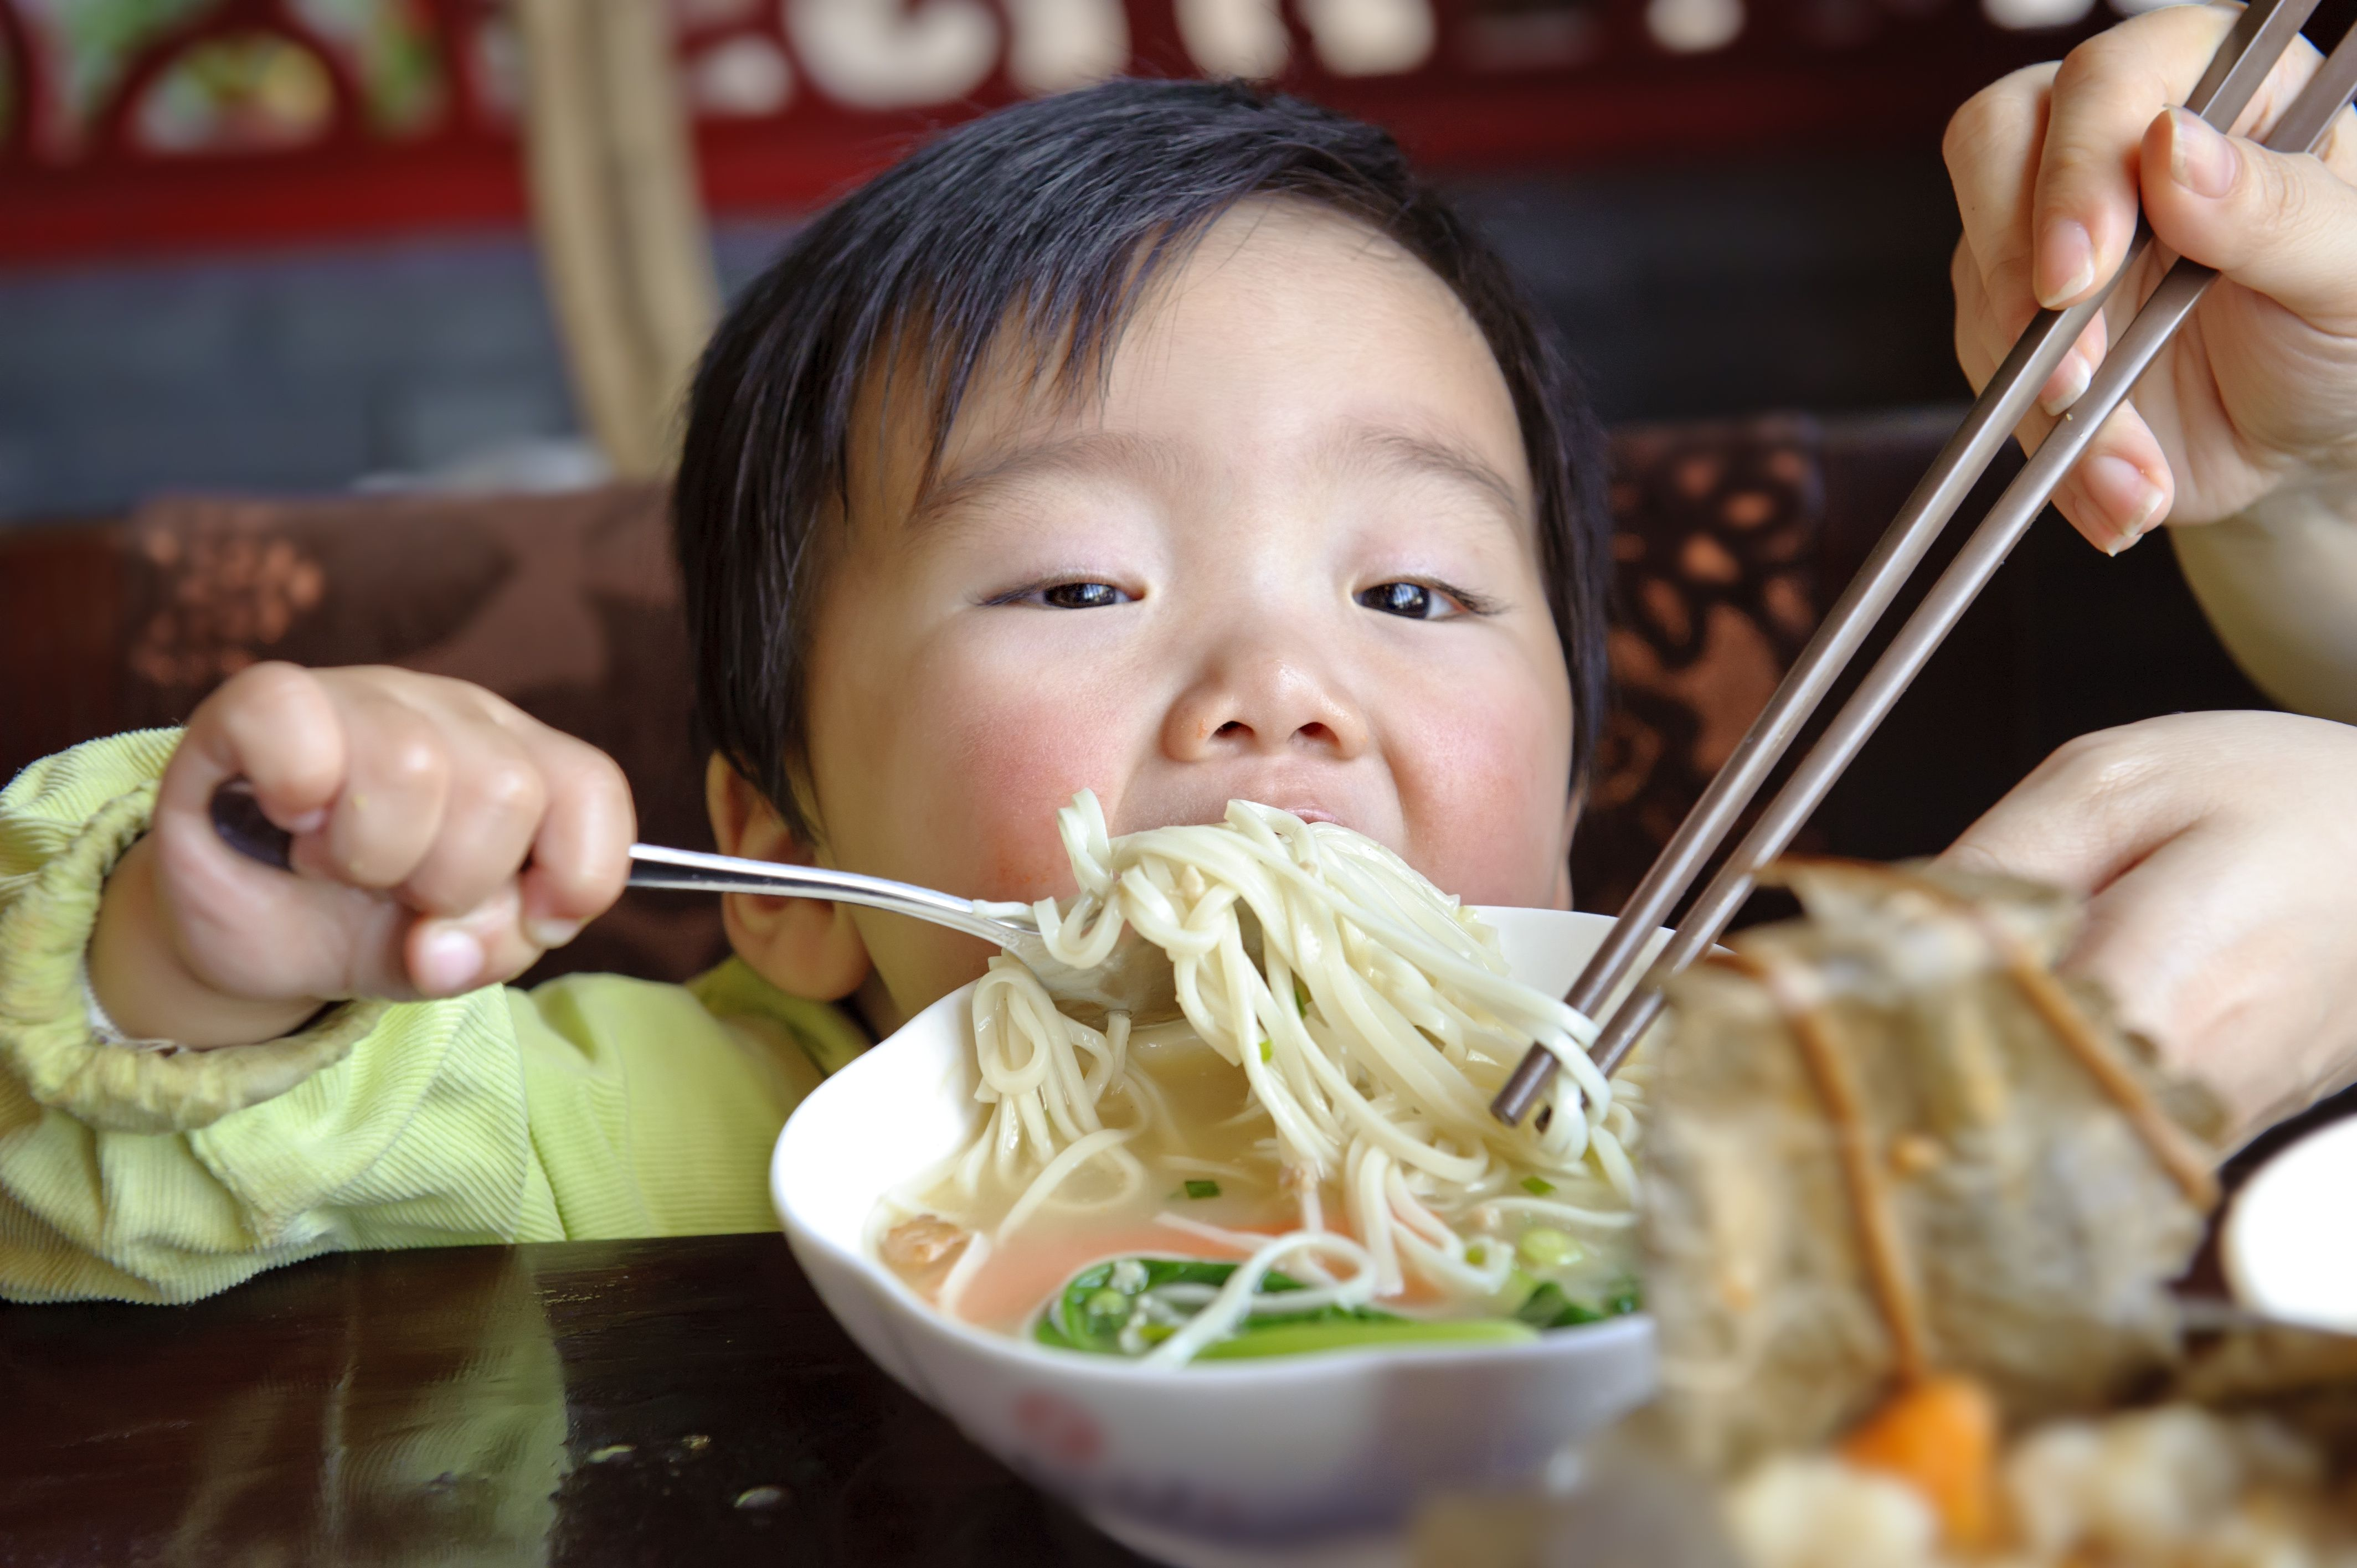 Enjoying PHO, a Vietnamese noodle soup consisting of rice noodles, different herbs & meat. Enjoy!